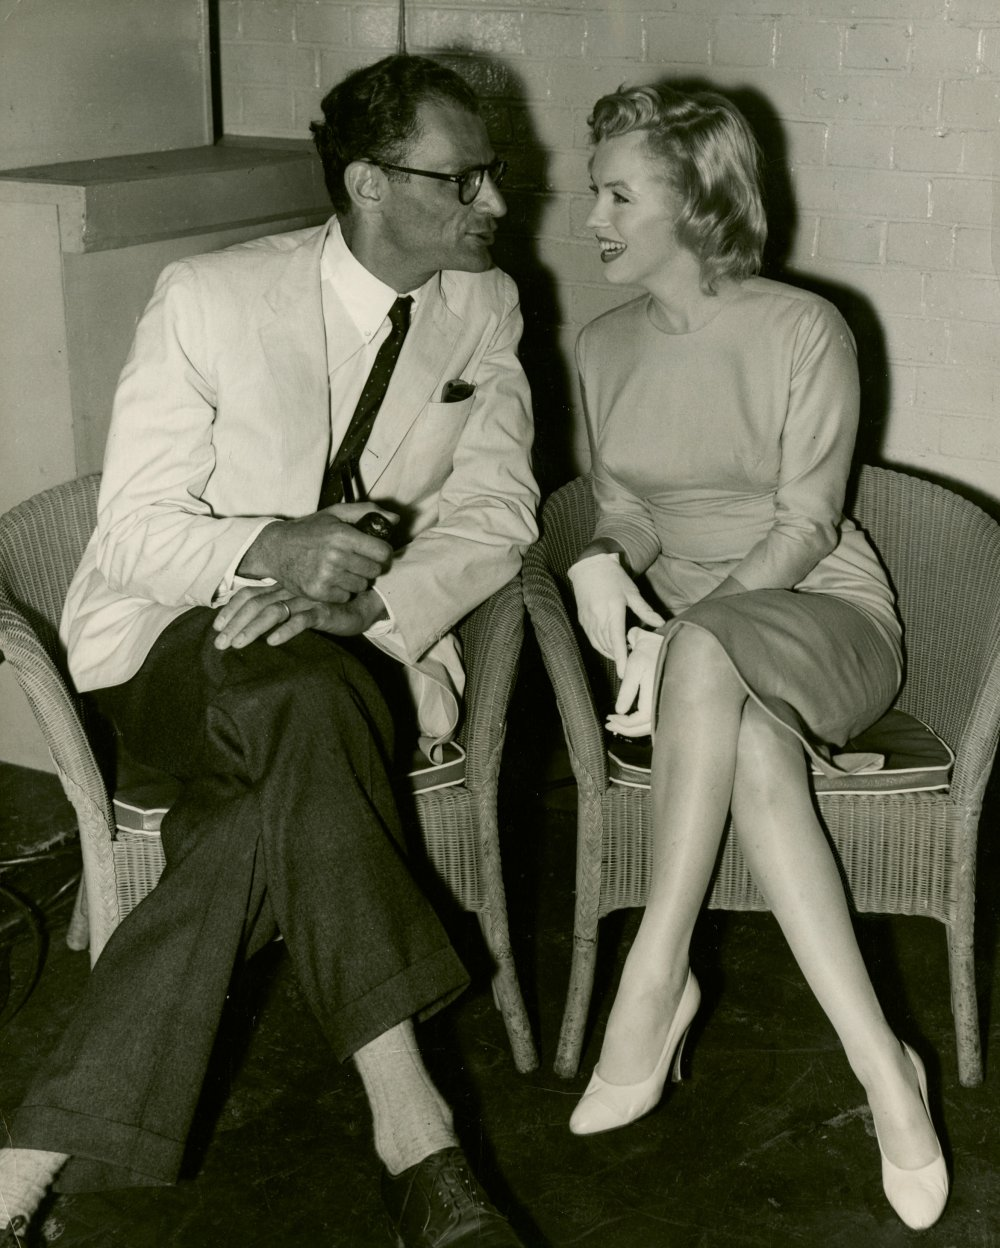 Publicity still of Arthur Miller and Marilyn Monroe at Heathrow Airport in 1956